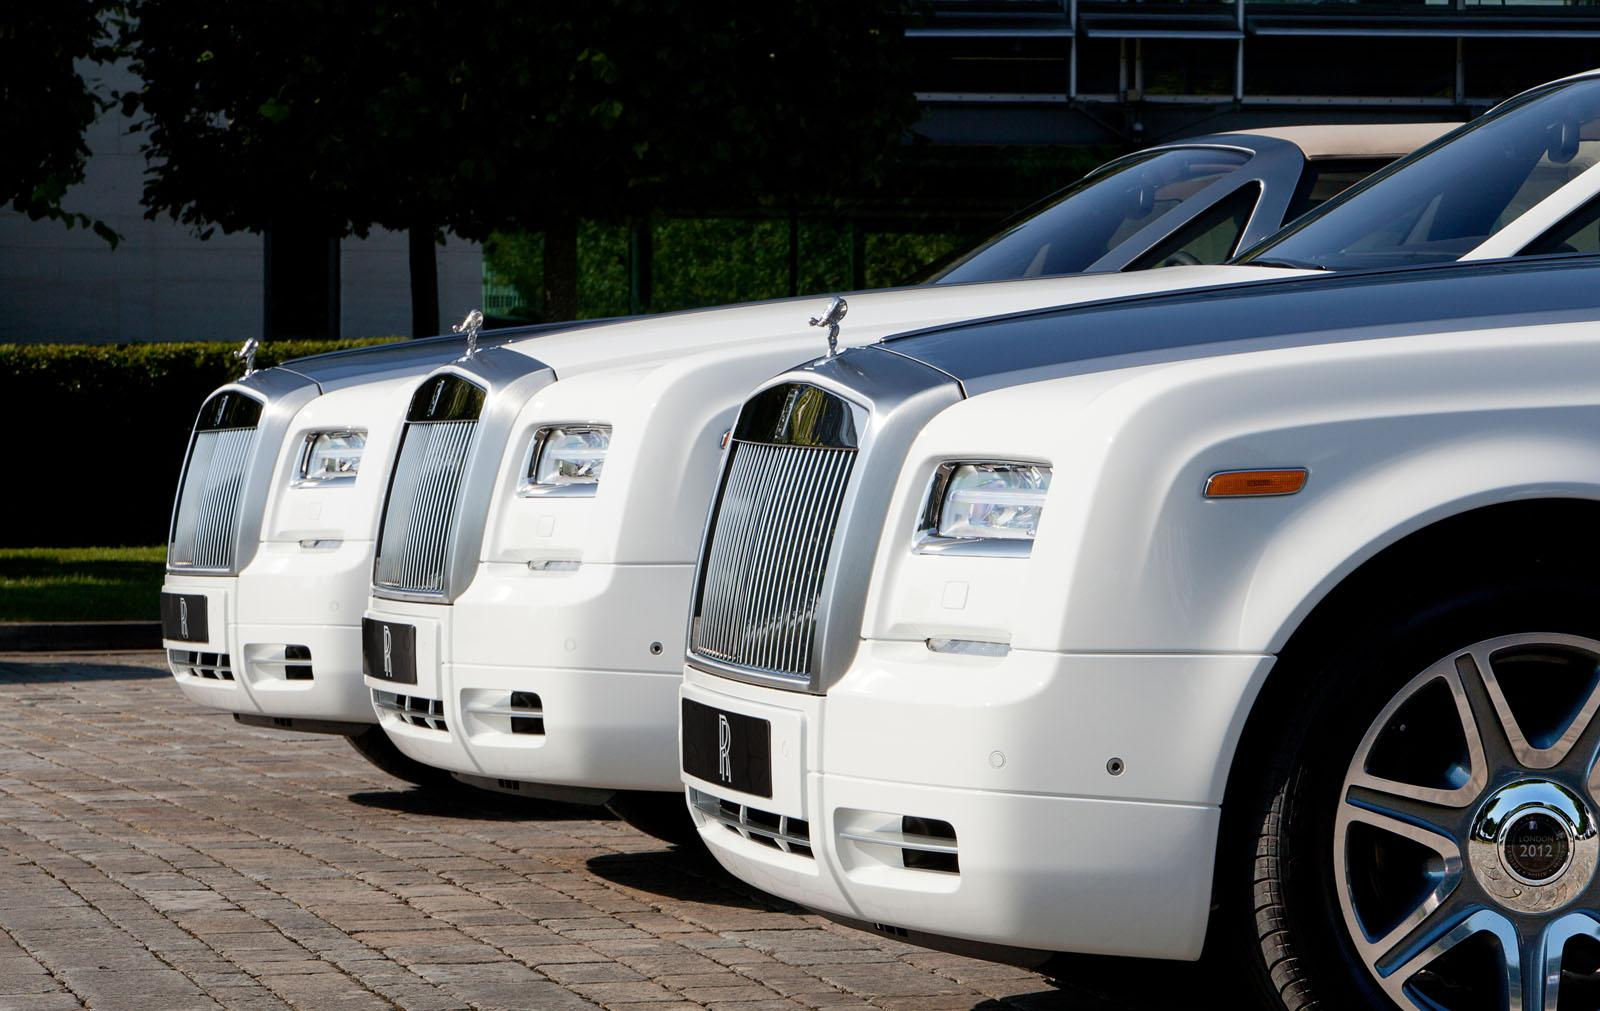 Rolls-Royce Phantom Drophead Coupes for 2012 Summer Olympic Games